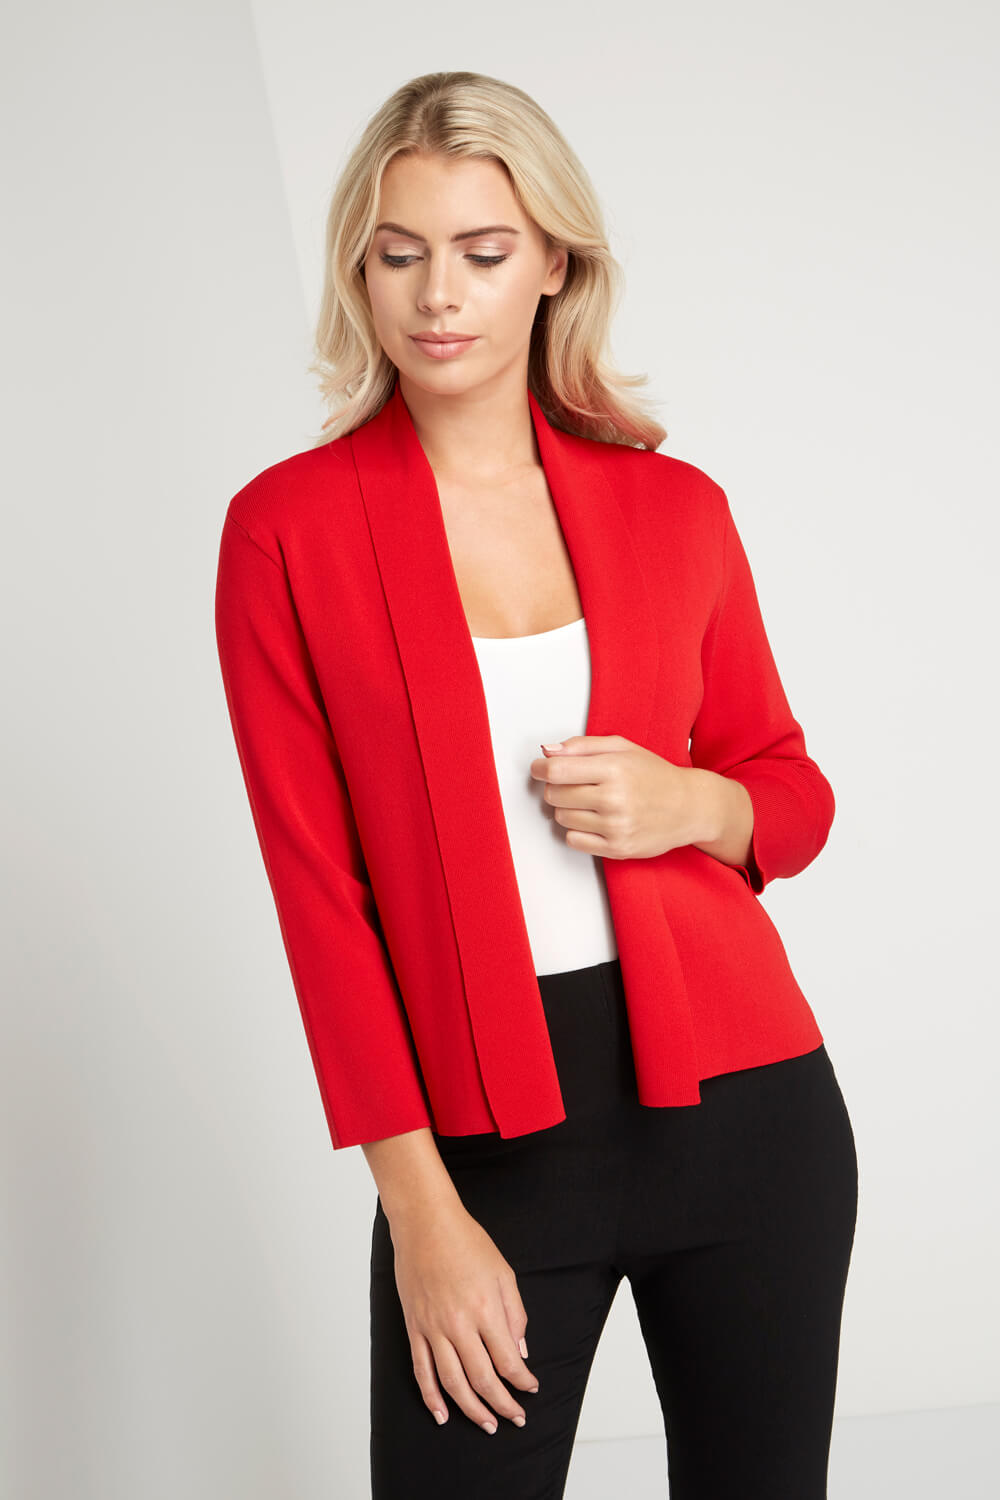 Roman-Originals-Women-039-s-Red-Plain-Shrug-Cardigan-Sizes-10-20 thumbnail 12